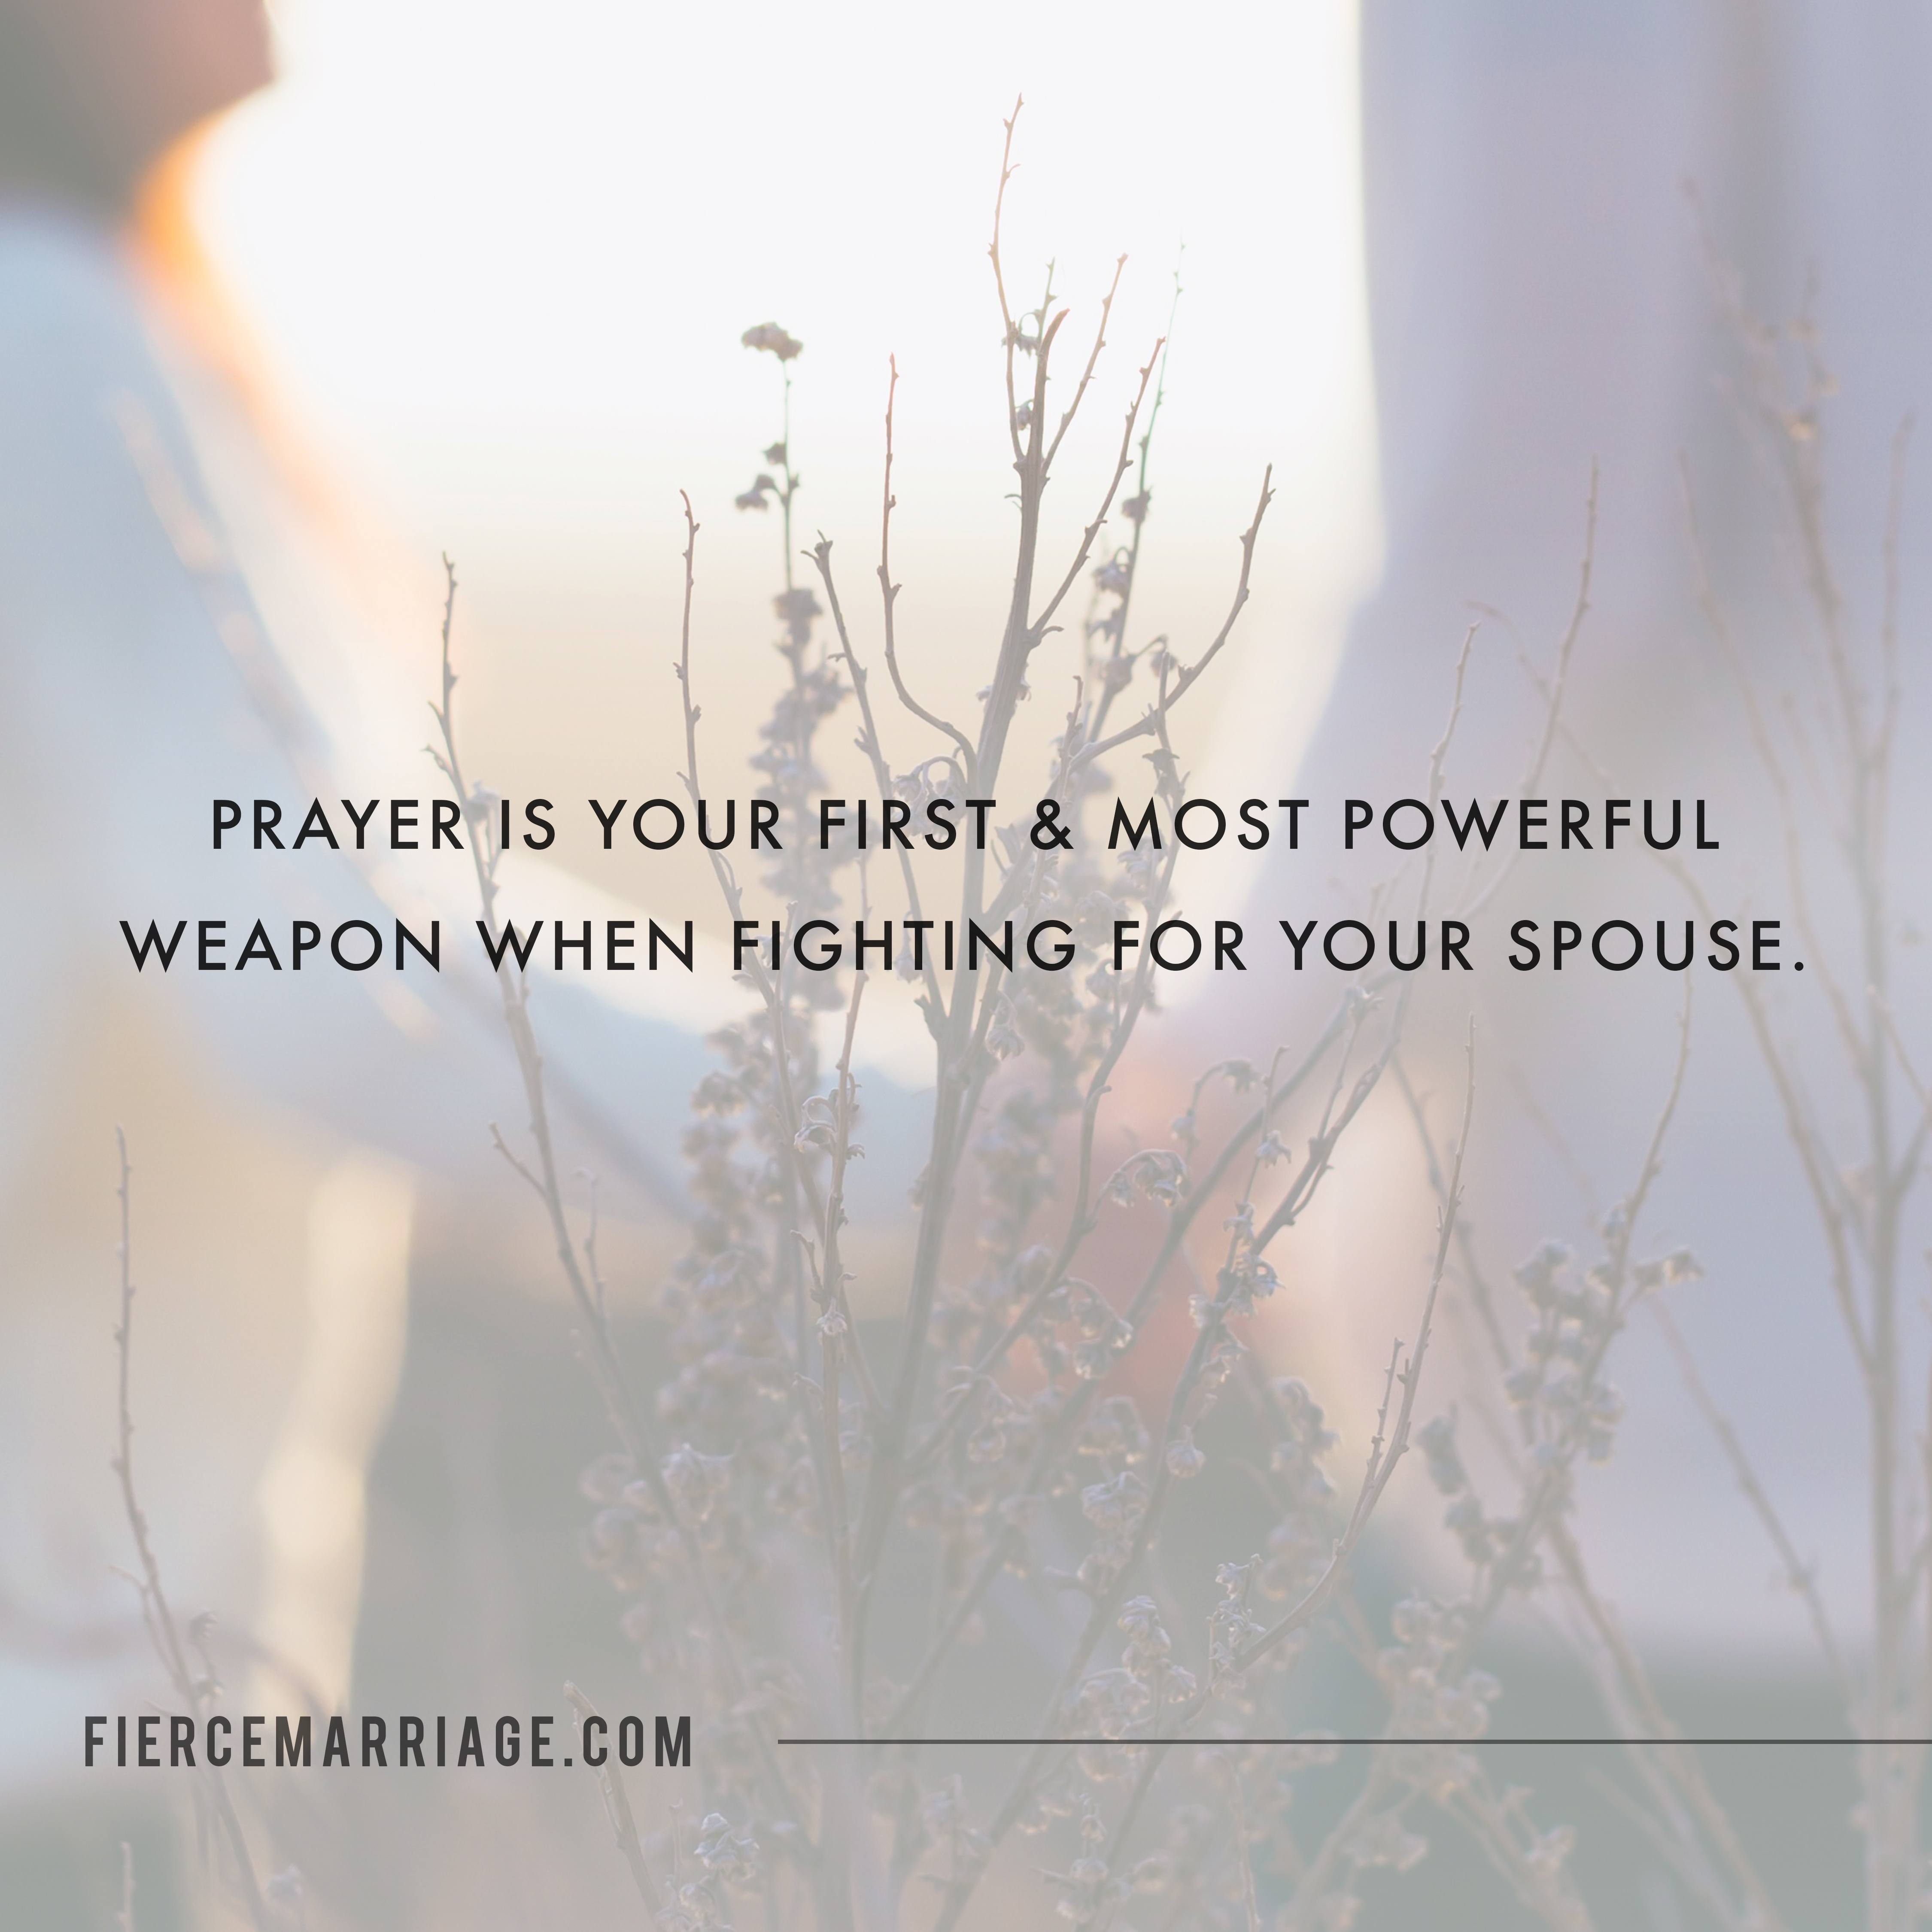 6 Ideas for Unified Prayer in Your Marriage